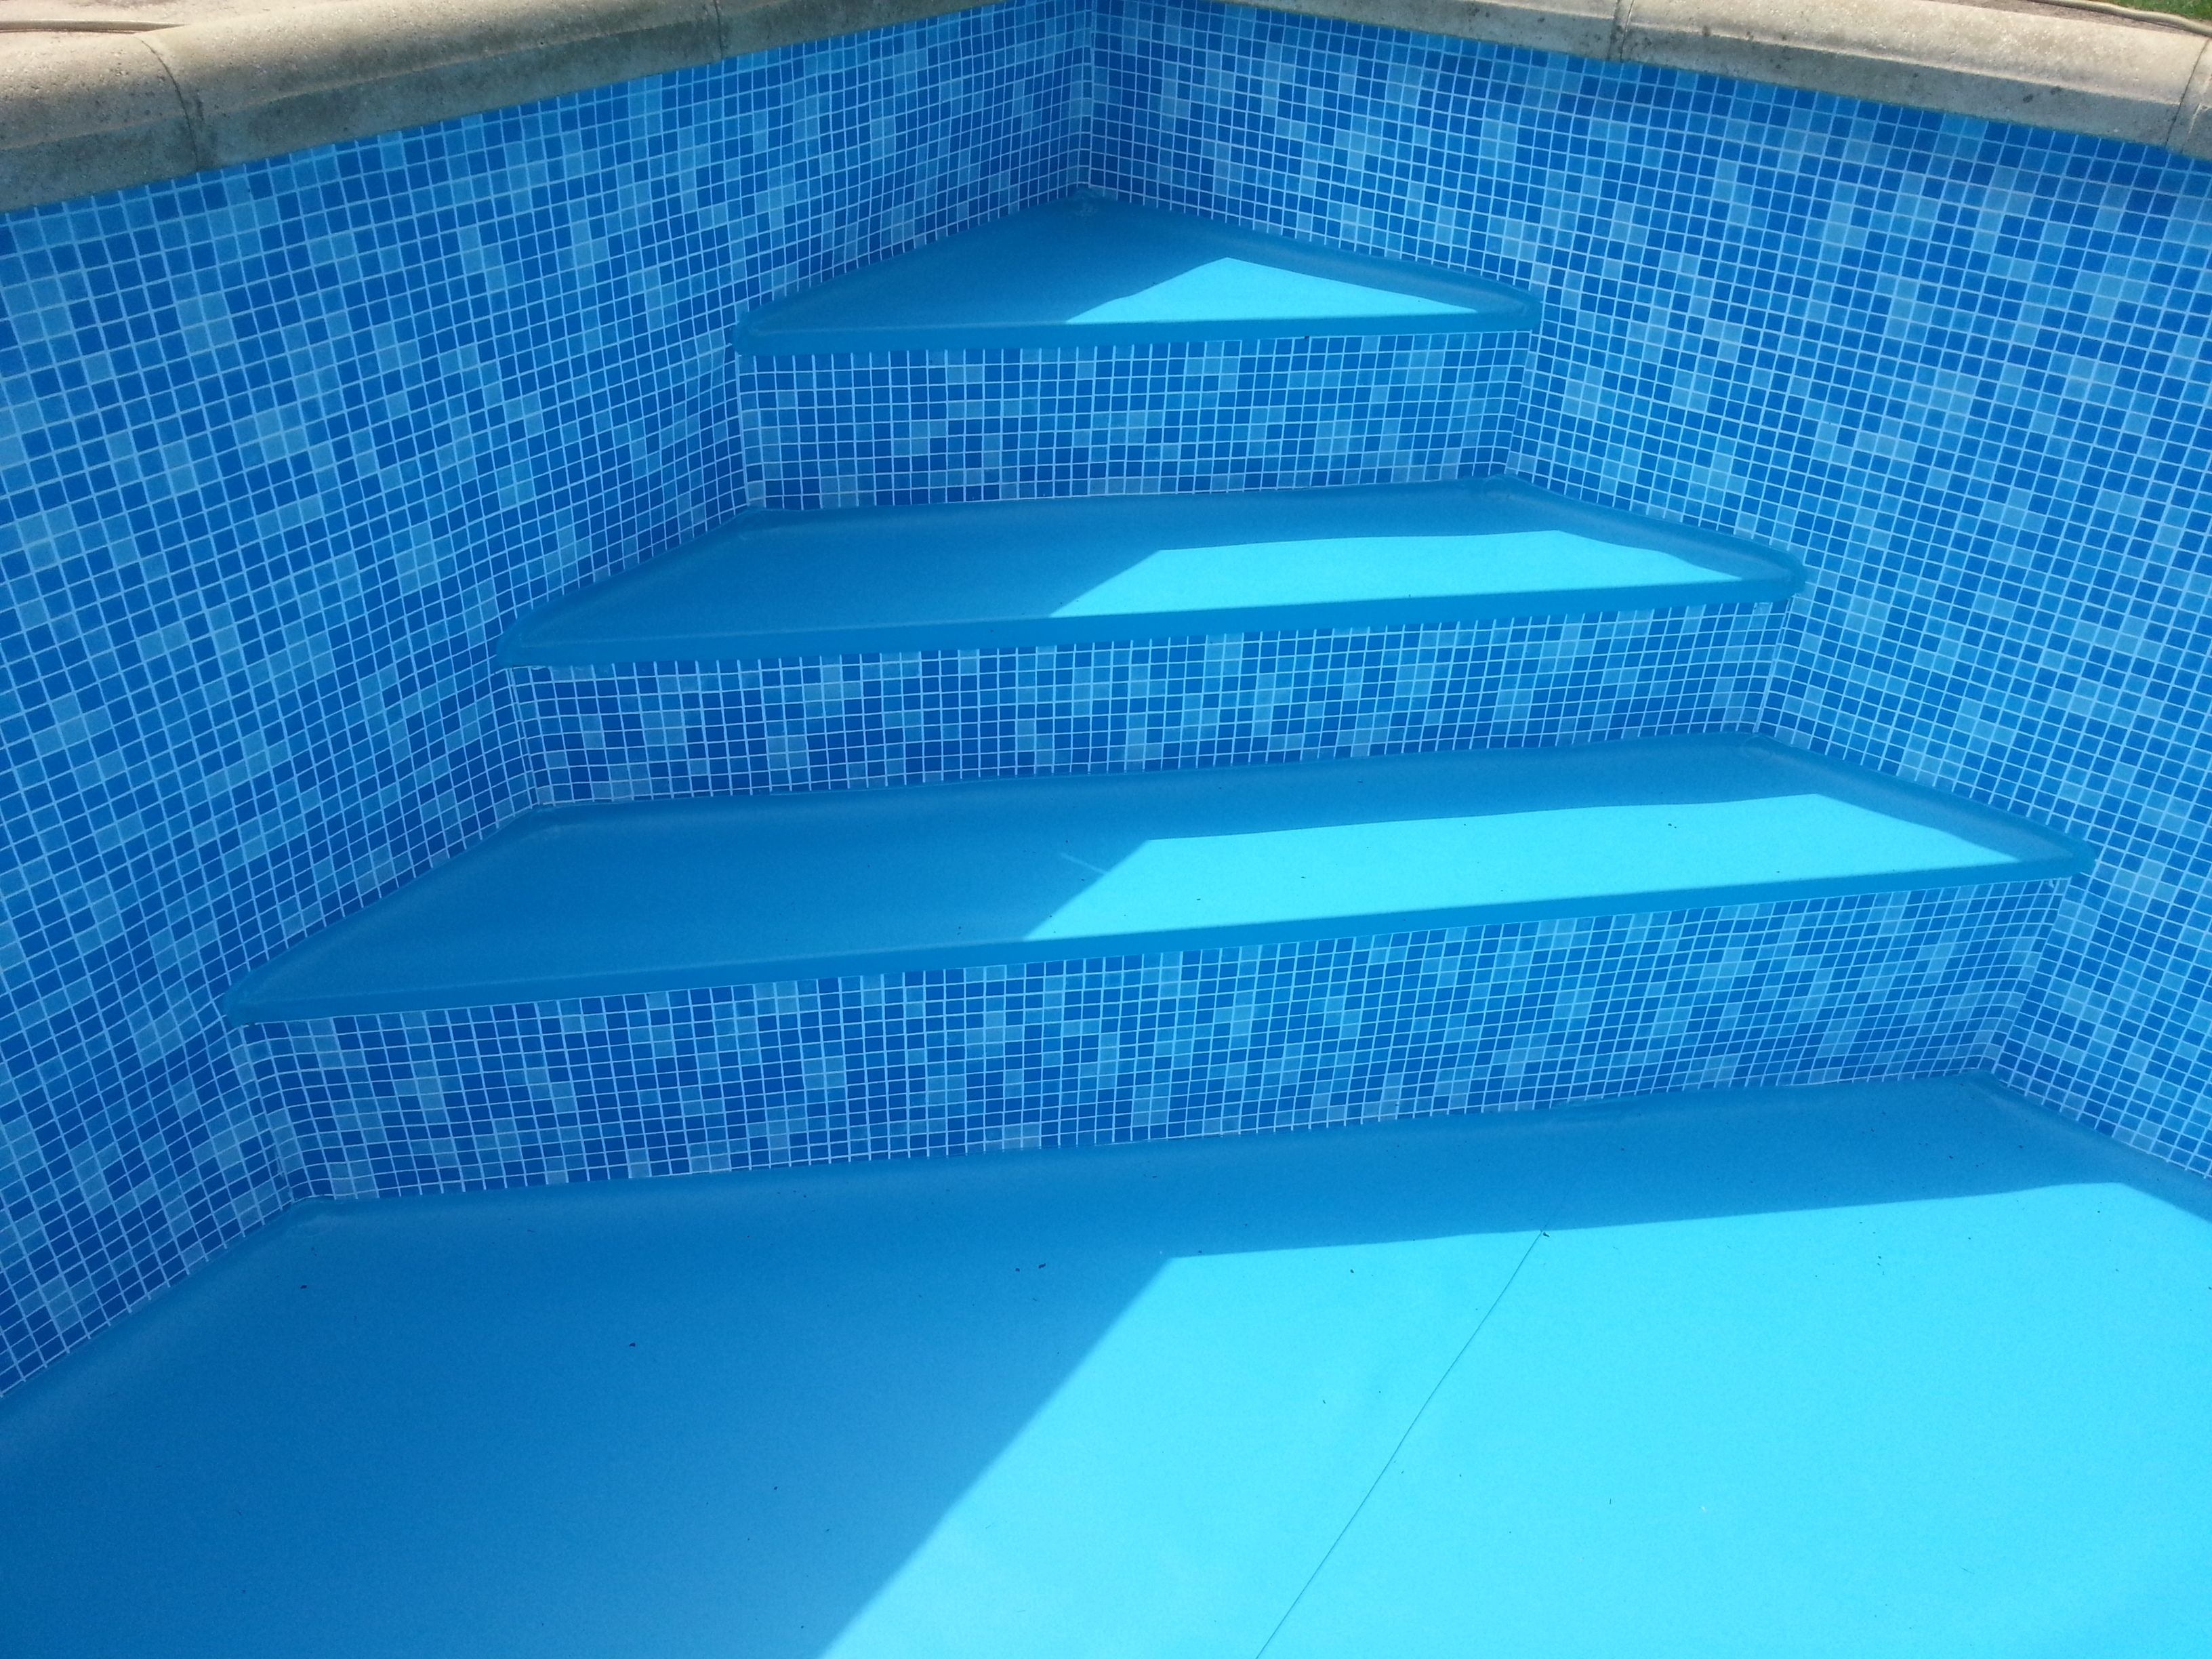 Swimming Pools Water Feature Mozaik En Donkerblauw